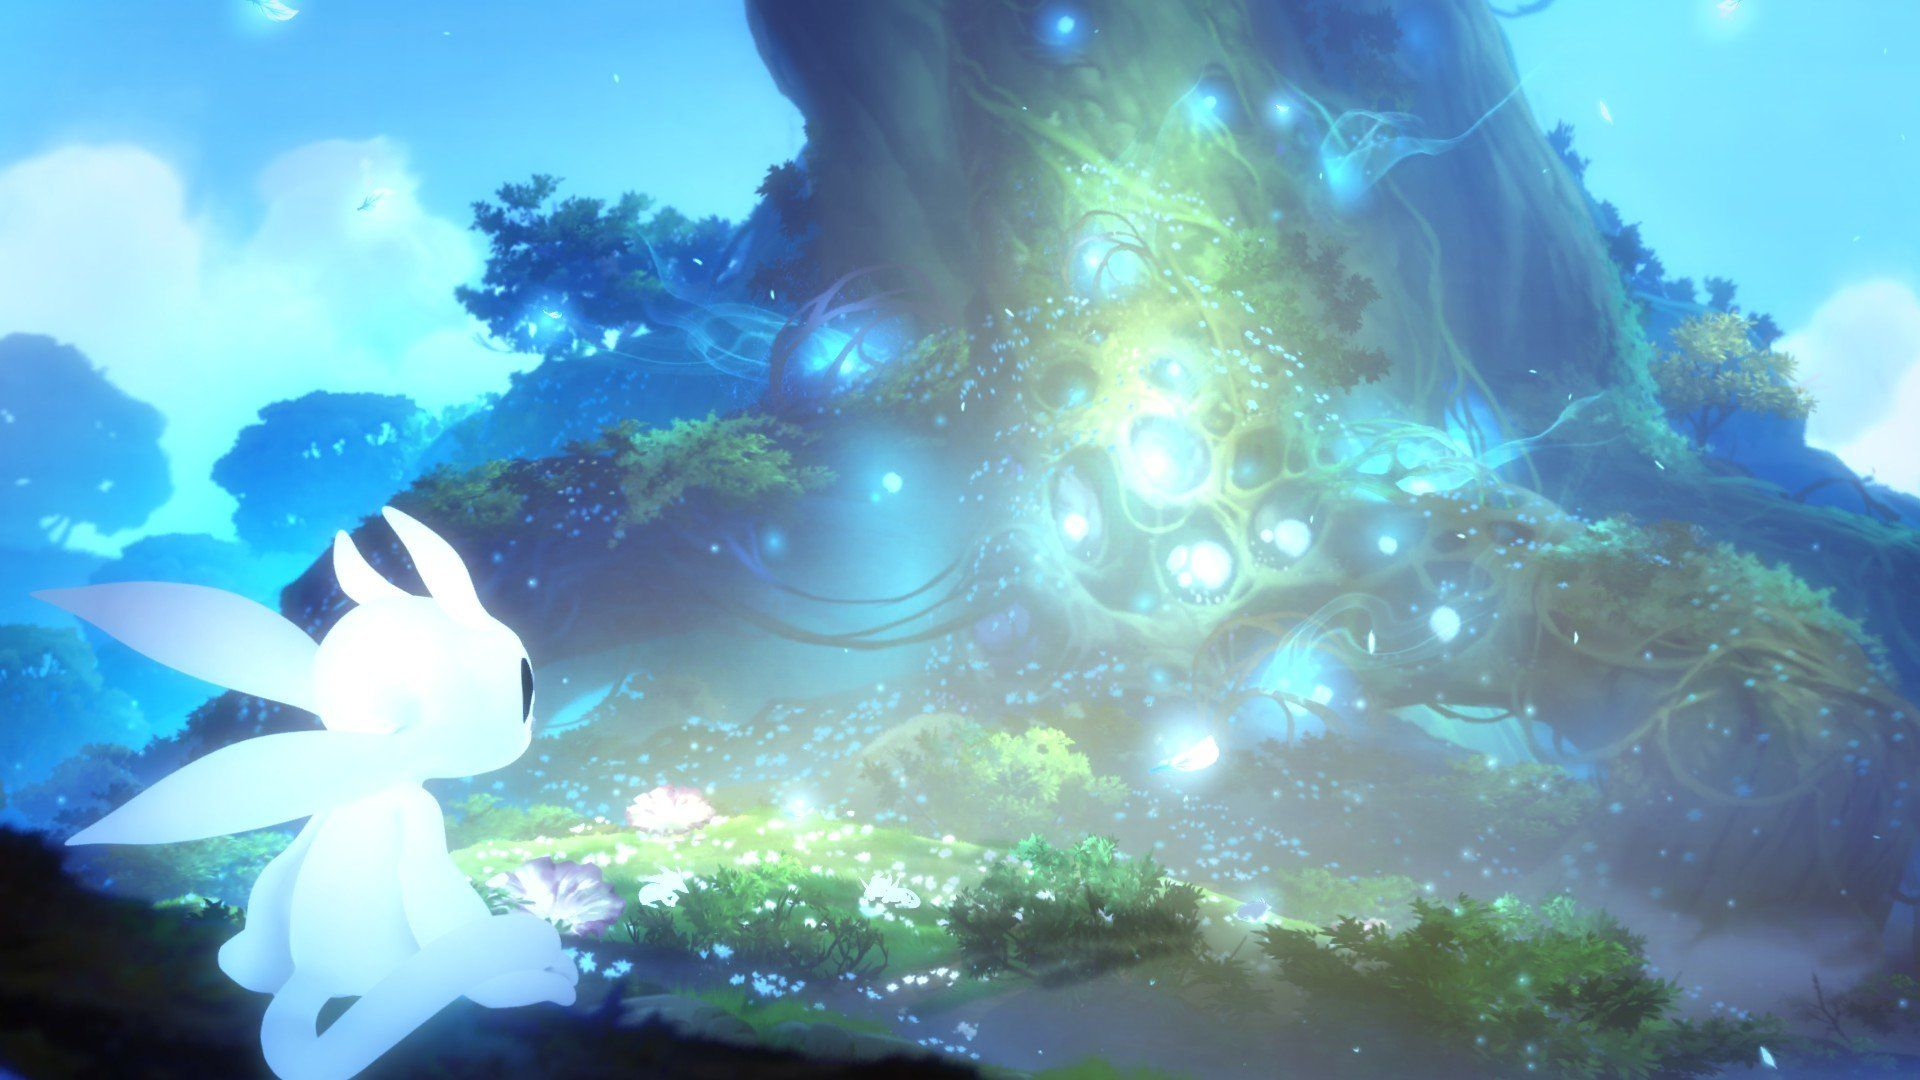 Ori And The Blind Forest Game Art Johannes Figlhuber Forest Wallpaper Forest Games Game Art